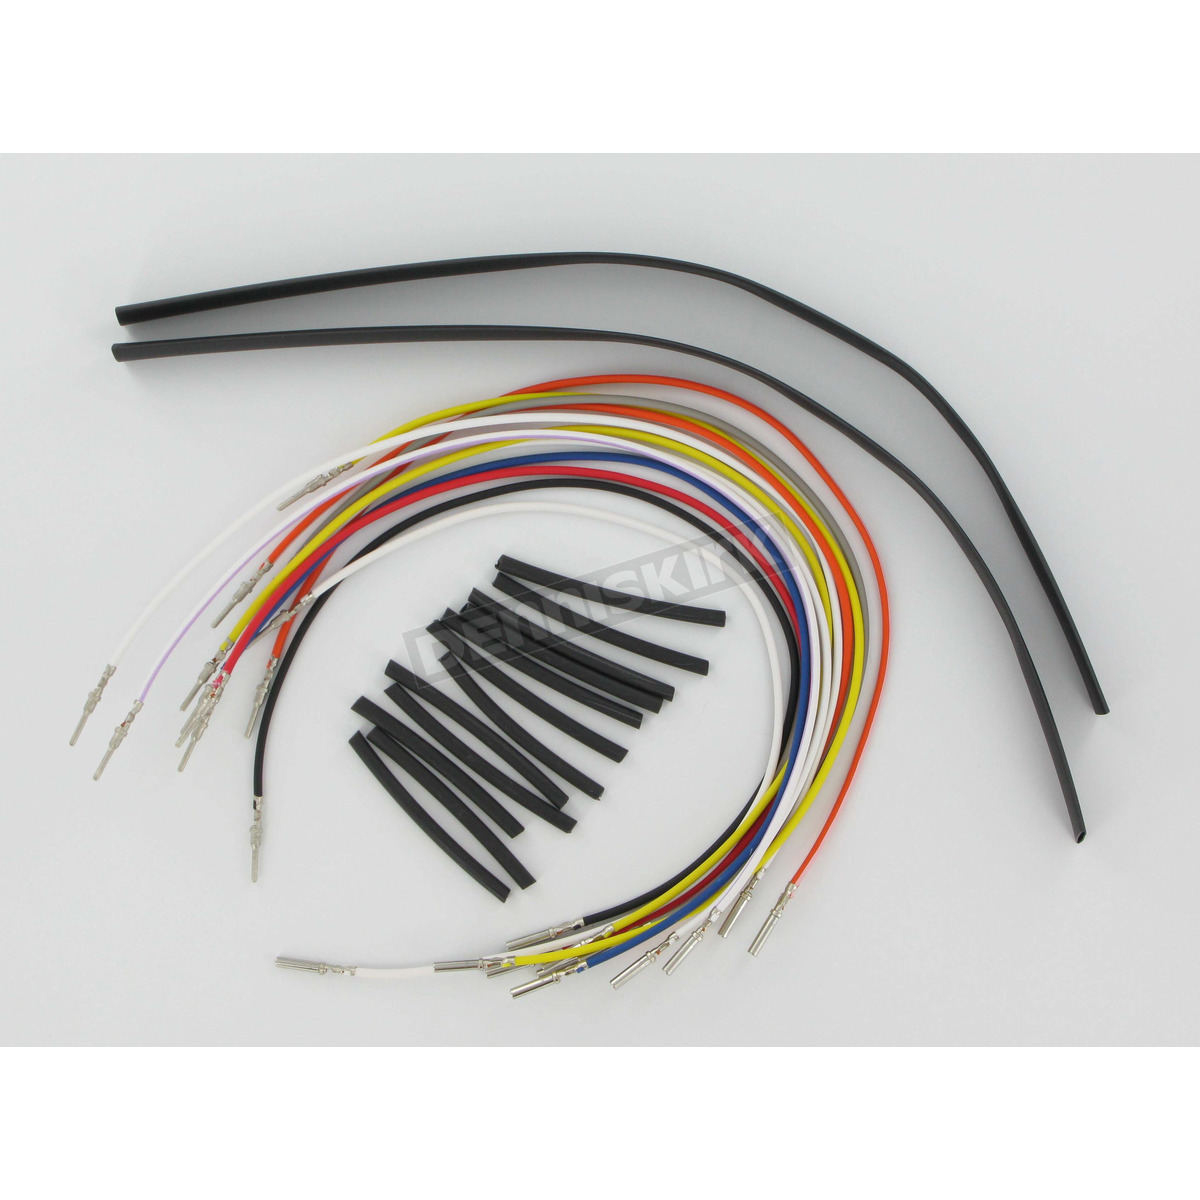 dk211741 novello 4 in handlebar wire harness extension kit nil wh4 harley davidson wiring harness extension at mifinder.co